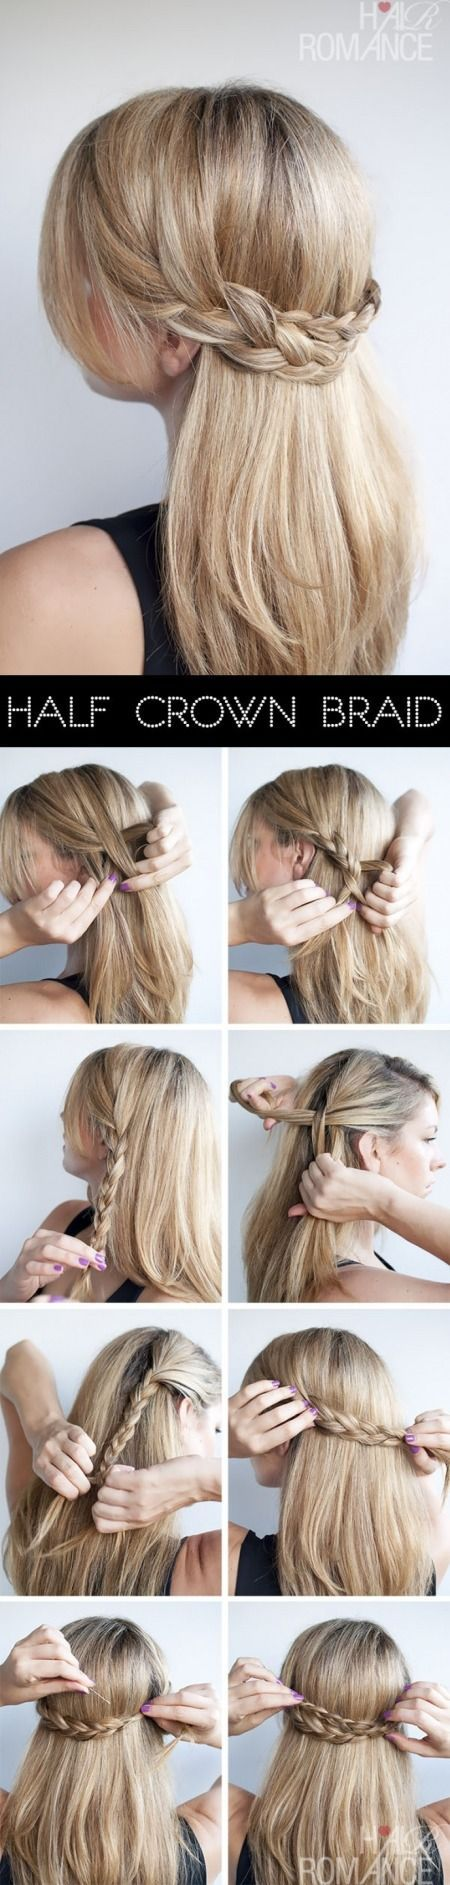 Metade Crown Braid penteado Tutorial